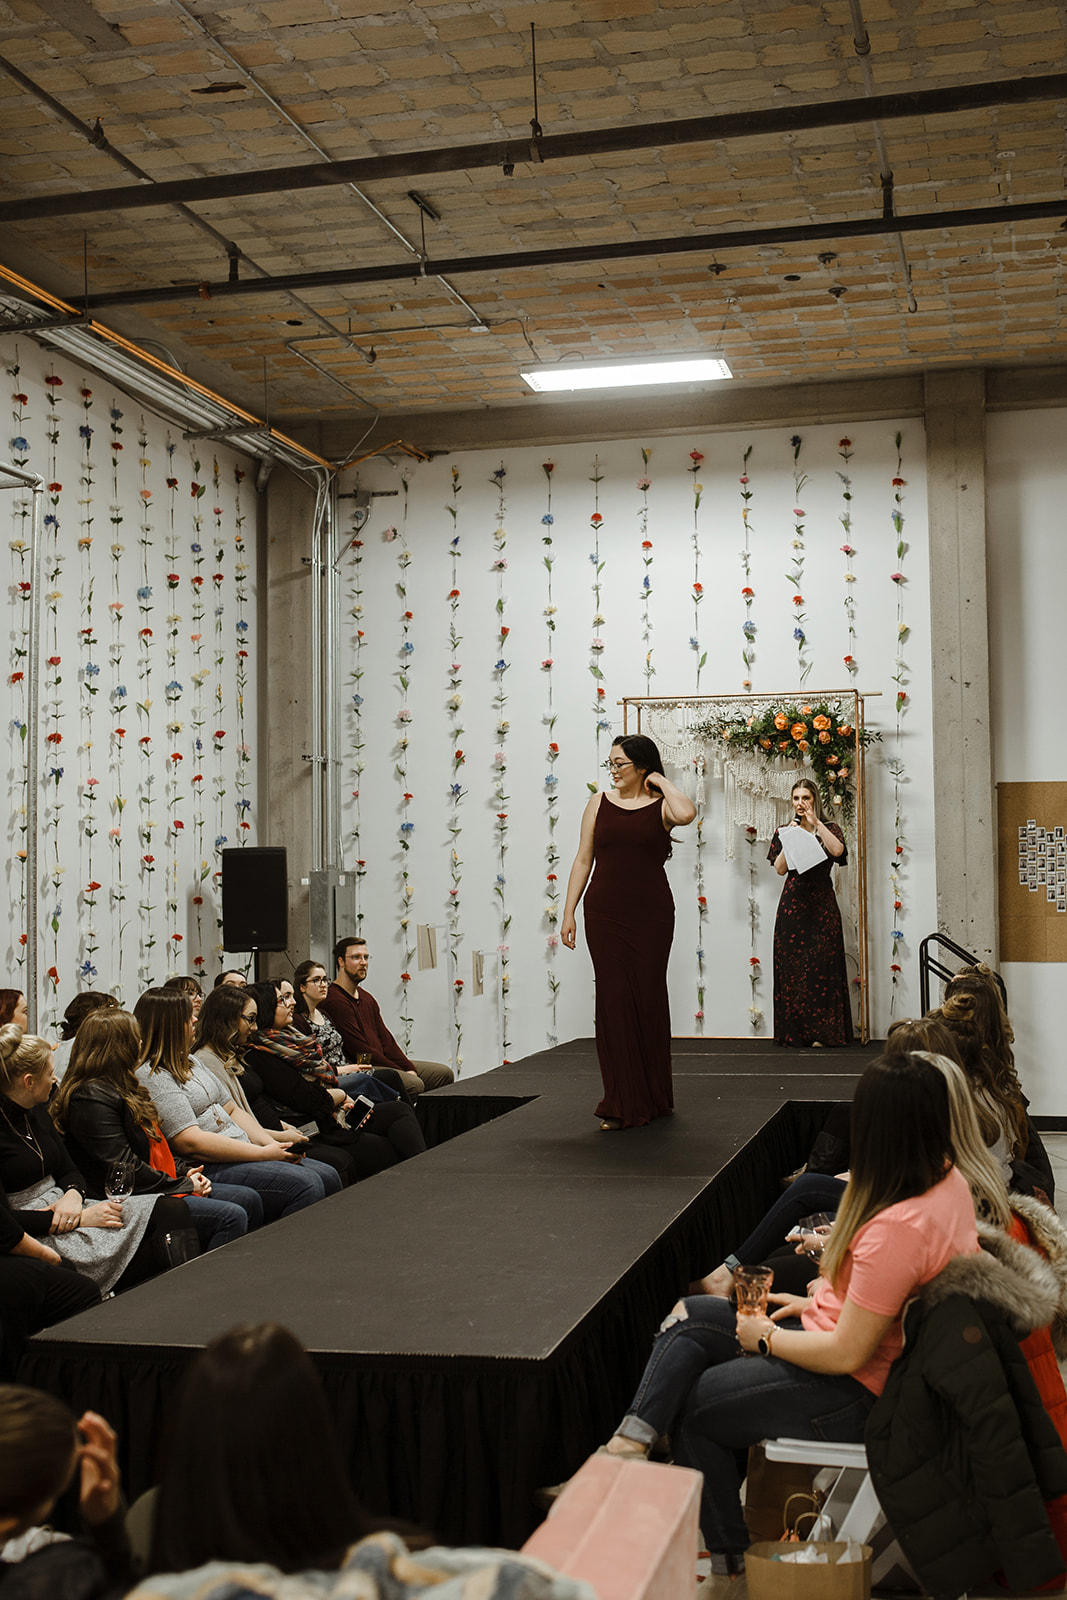 spokane wedding dress fashion show bridesmaid dark